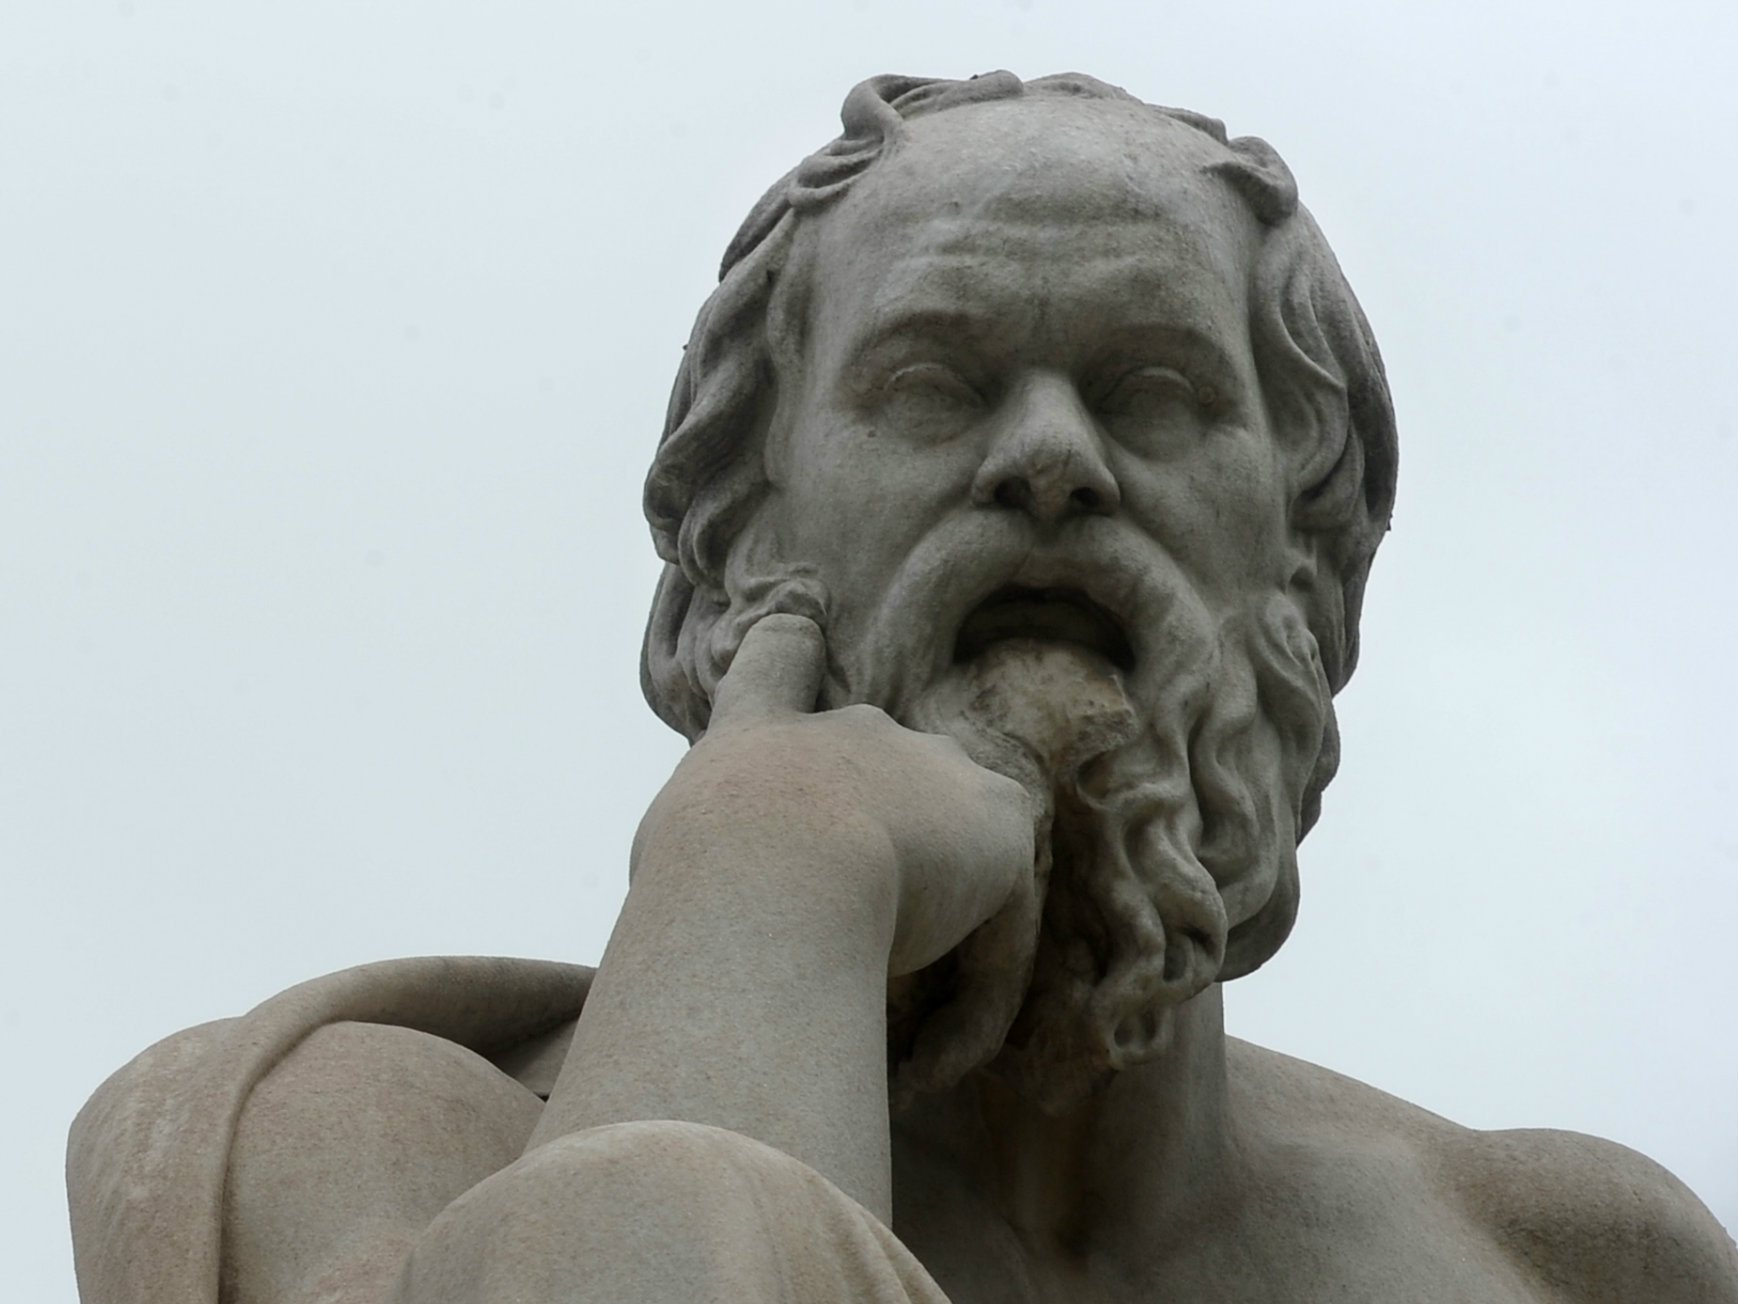 the greek philosophy of man List of famous quotes by greek people: socrates, plato, aristotle, epicurus,  alexander the great, heraclitus,  philosopher of the 5th century bc one thing i   all men's souls are immortal, but the souls of the righteous are immortal and  divine.